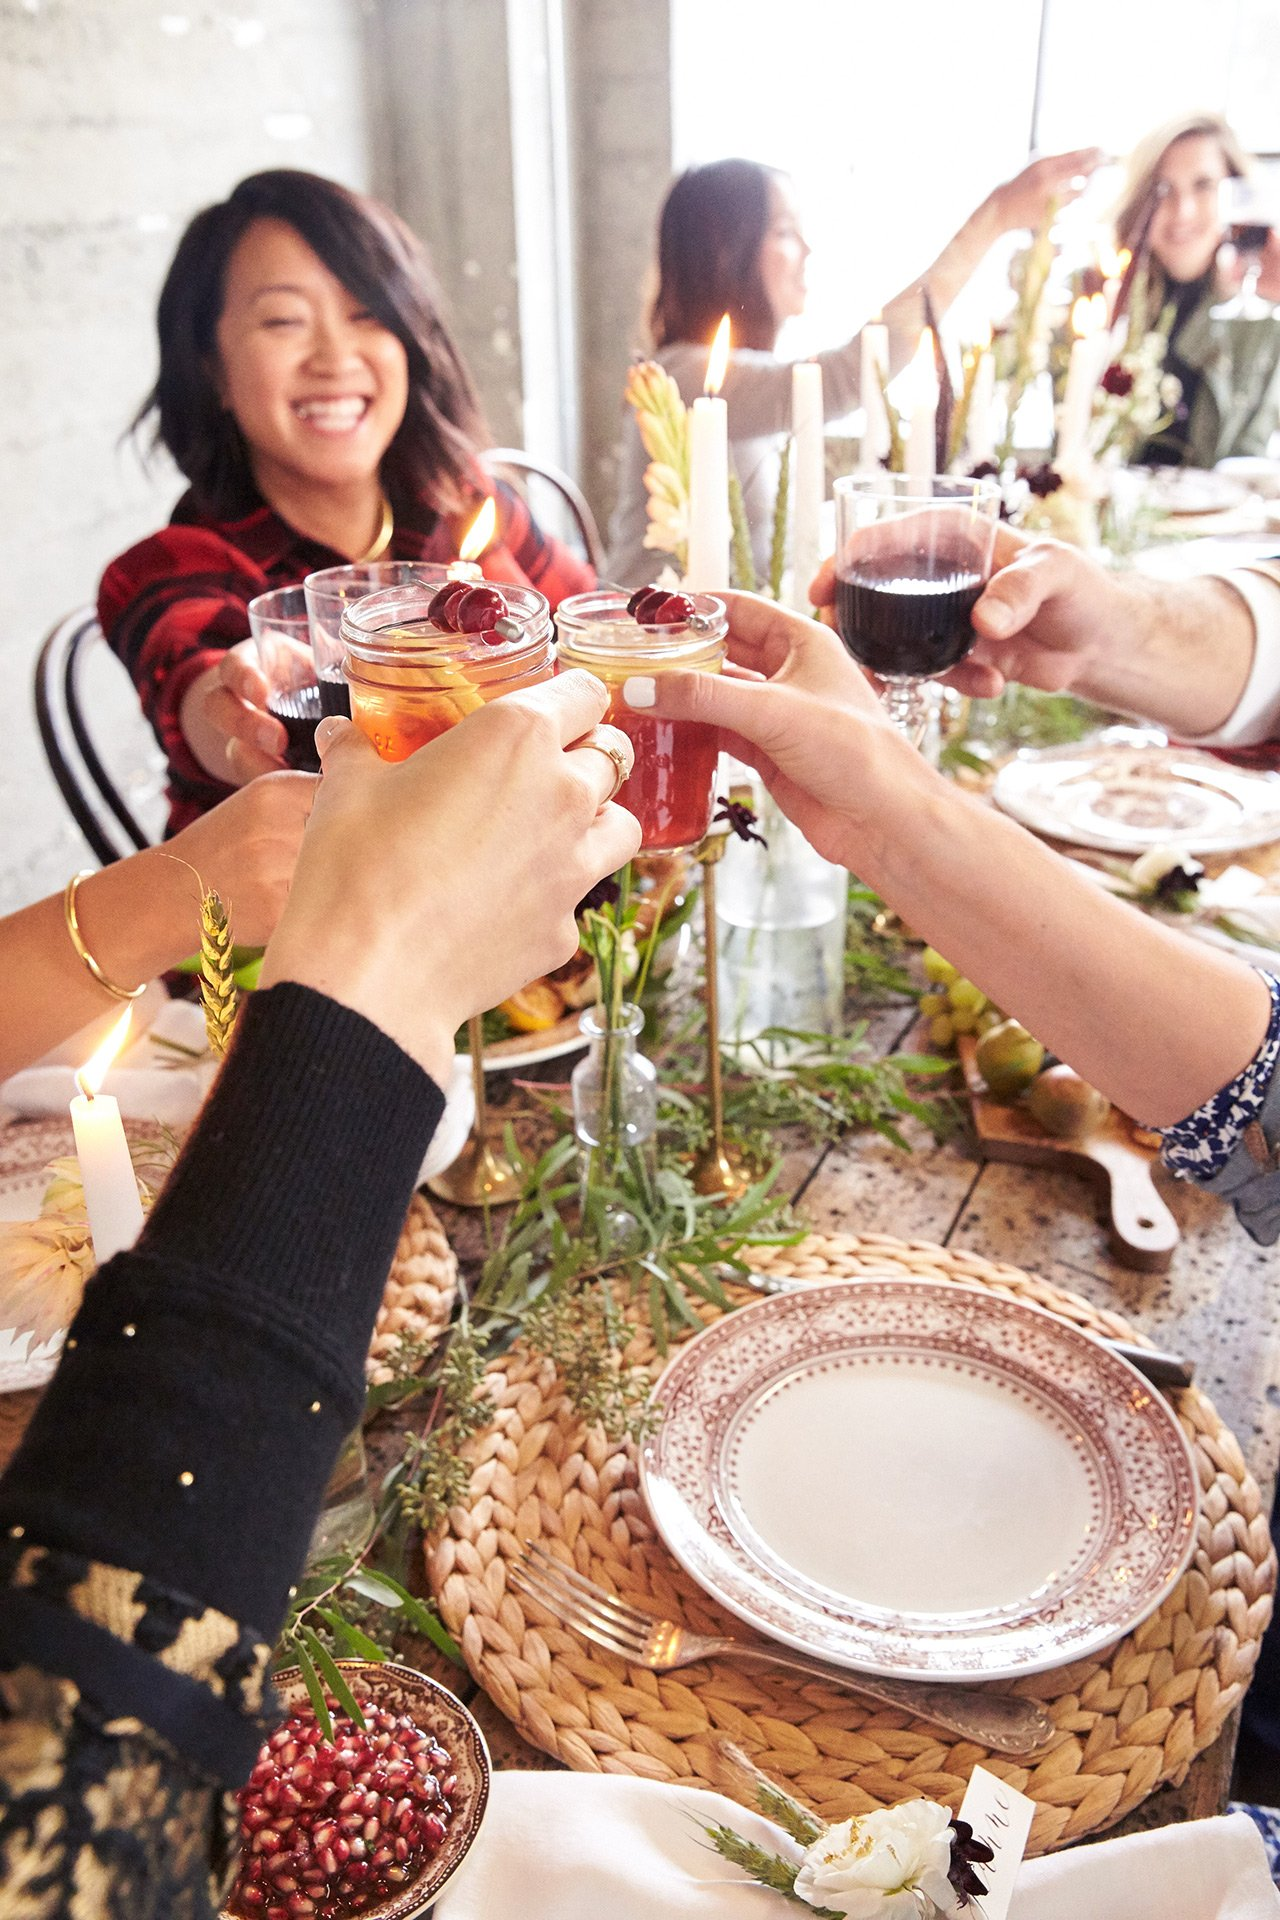 A Friendsgiving Feast! | HonestlyYUM (honestlyyum.com)